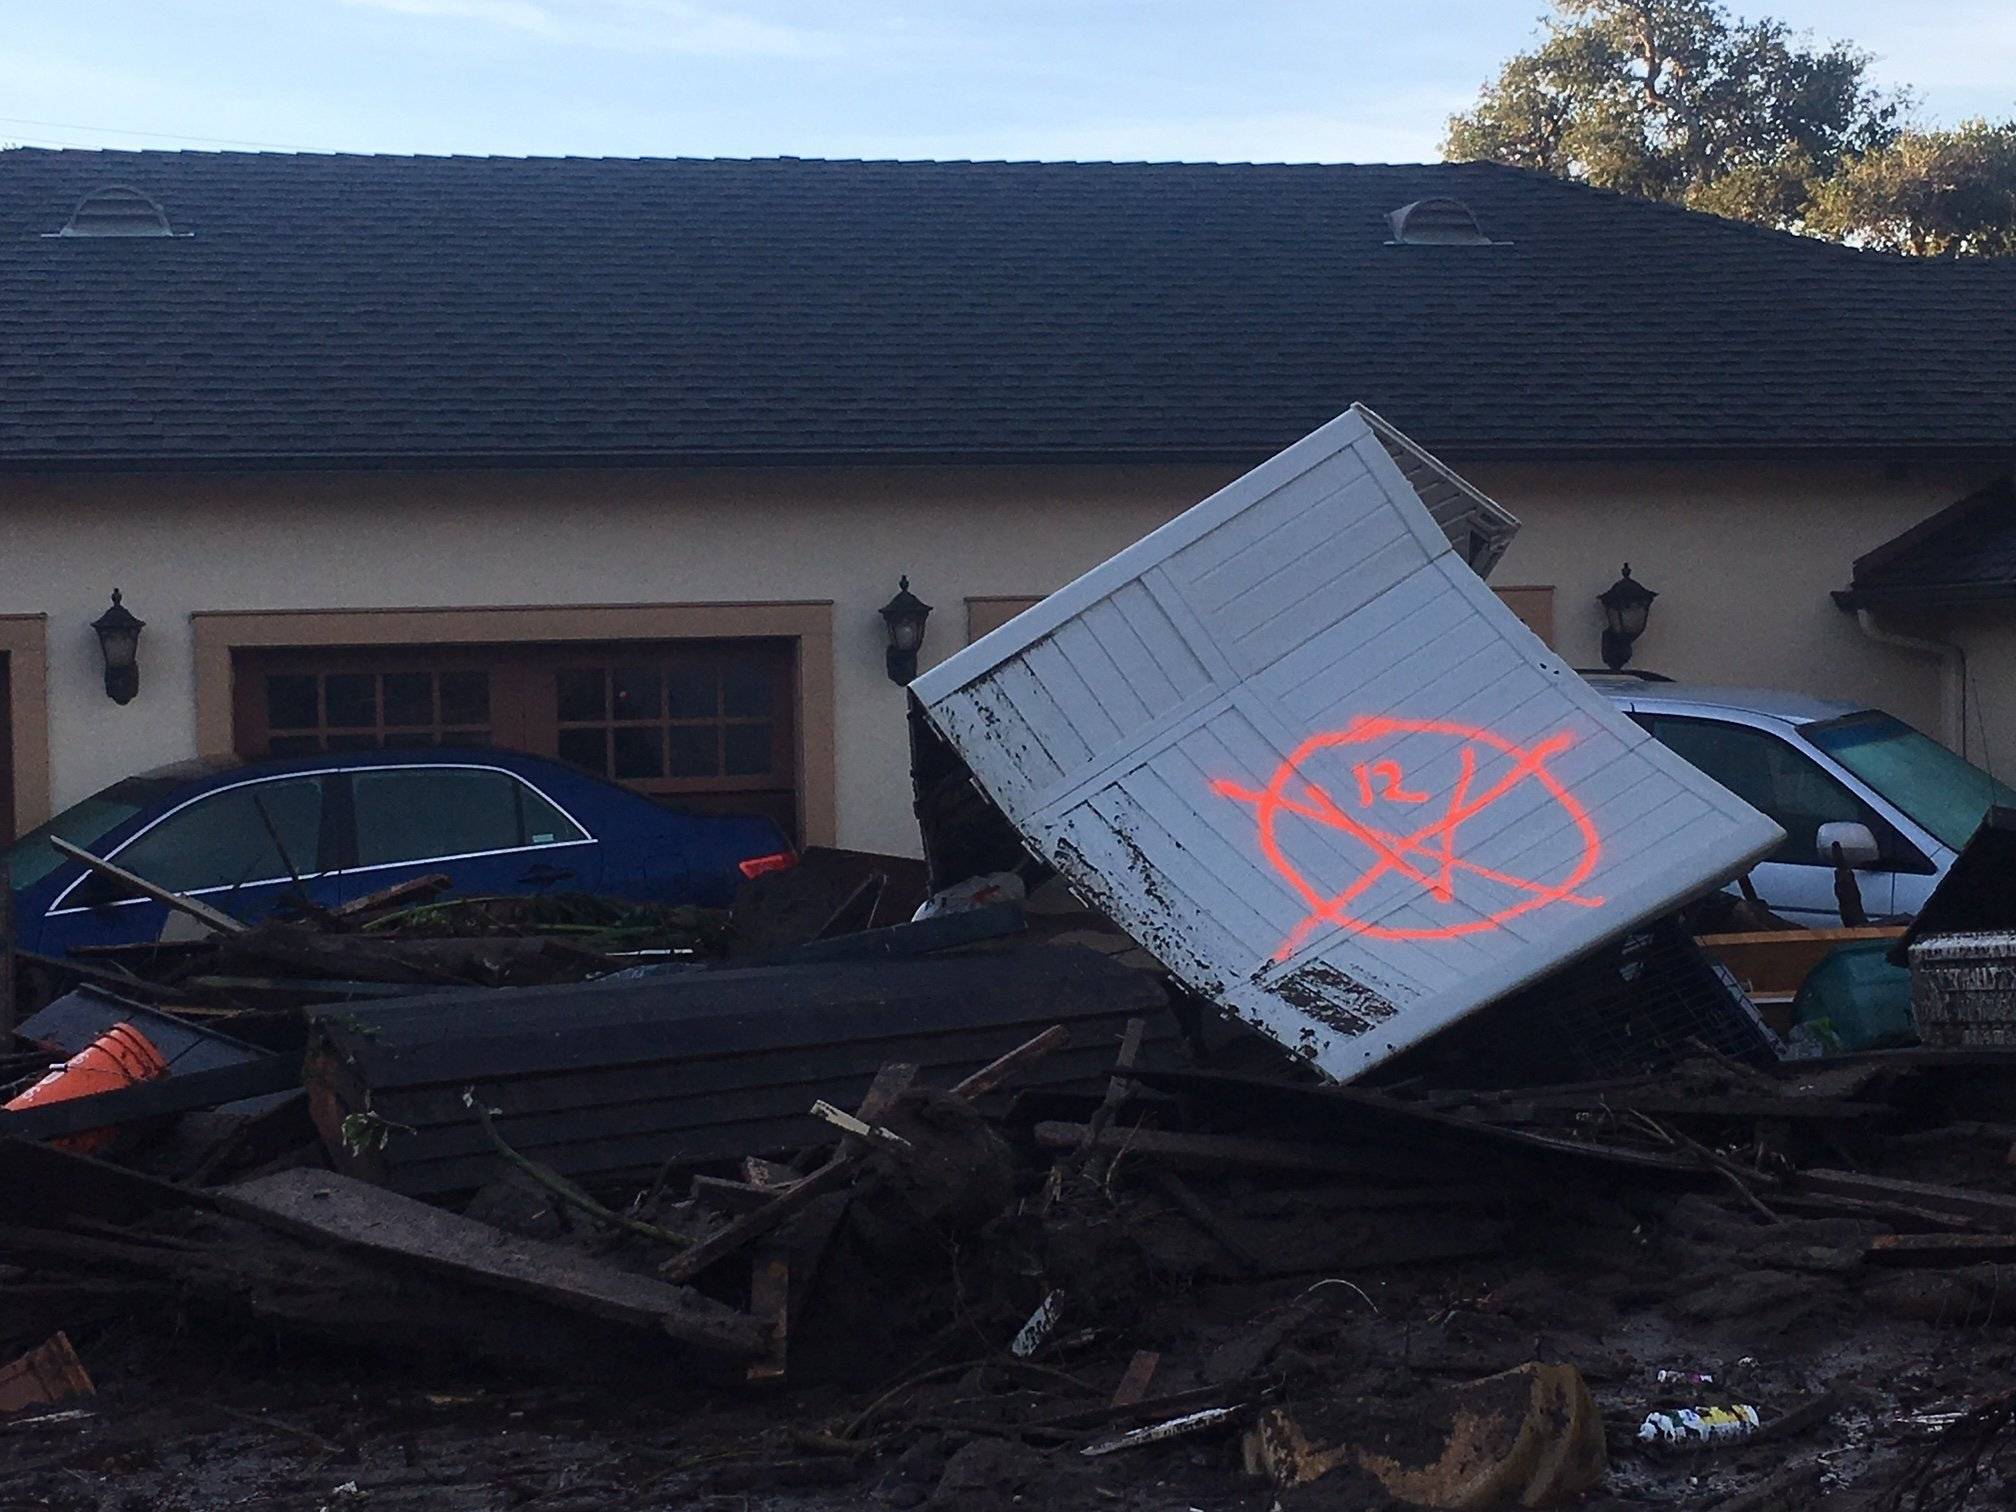 A home in Montecito, California is ruined the mudslides. The home is covered in debris and had a gas blowout. The front windows of the property are completely gone.